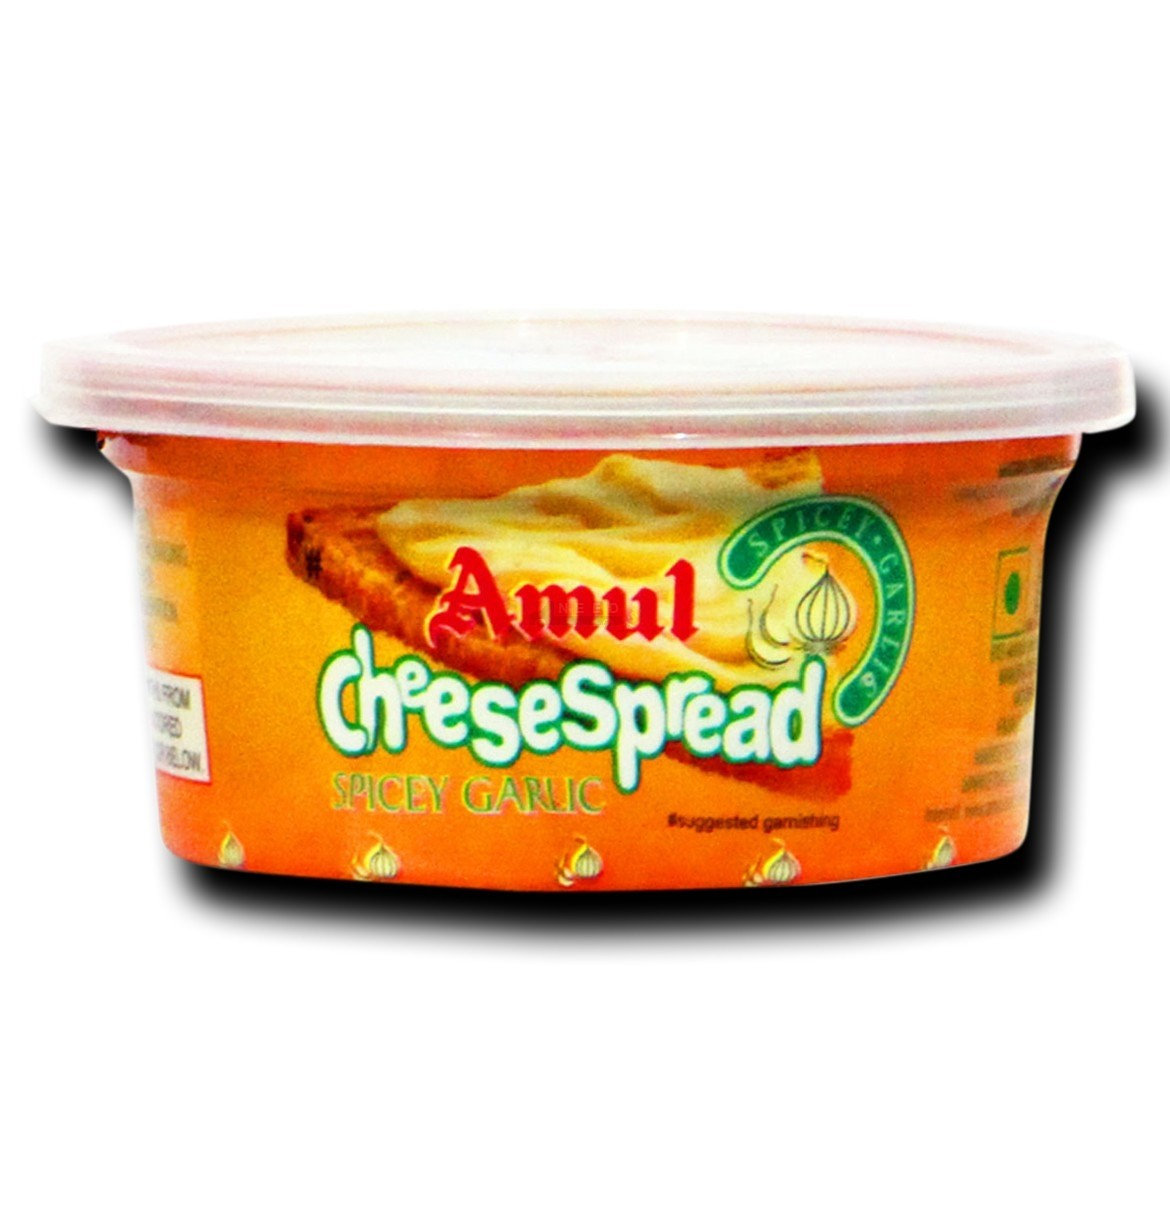 Amul Cheese Spread Spicy Garlic